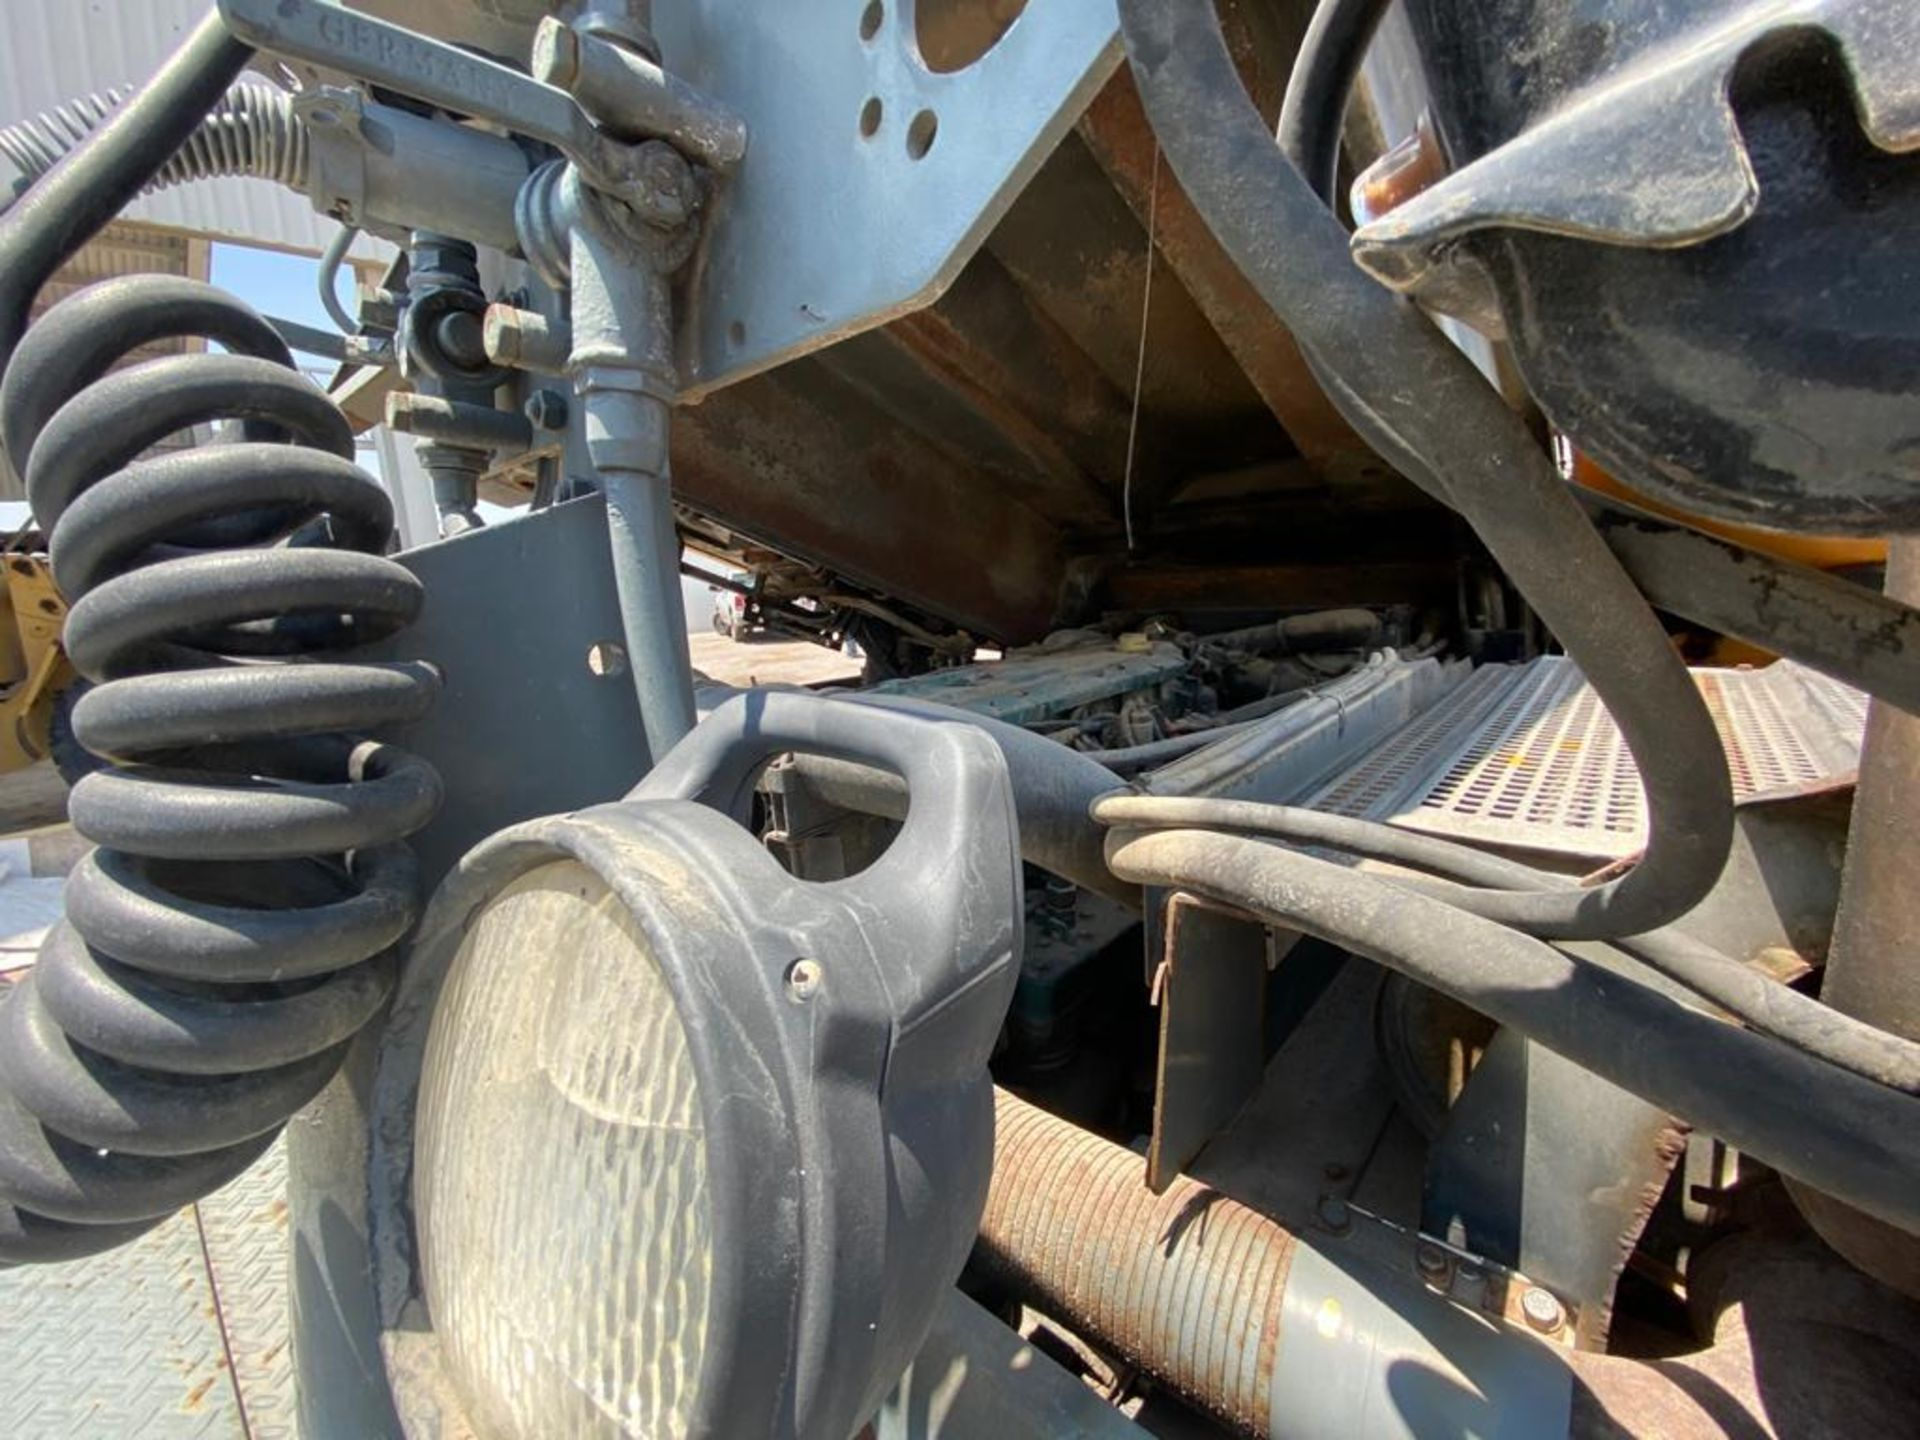 Terberg Capacity 2002 Terminal Tractor, automatic transmission, with Volvo motor - Image 47 of 57